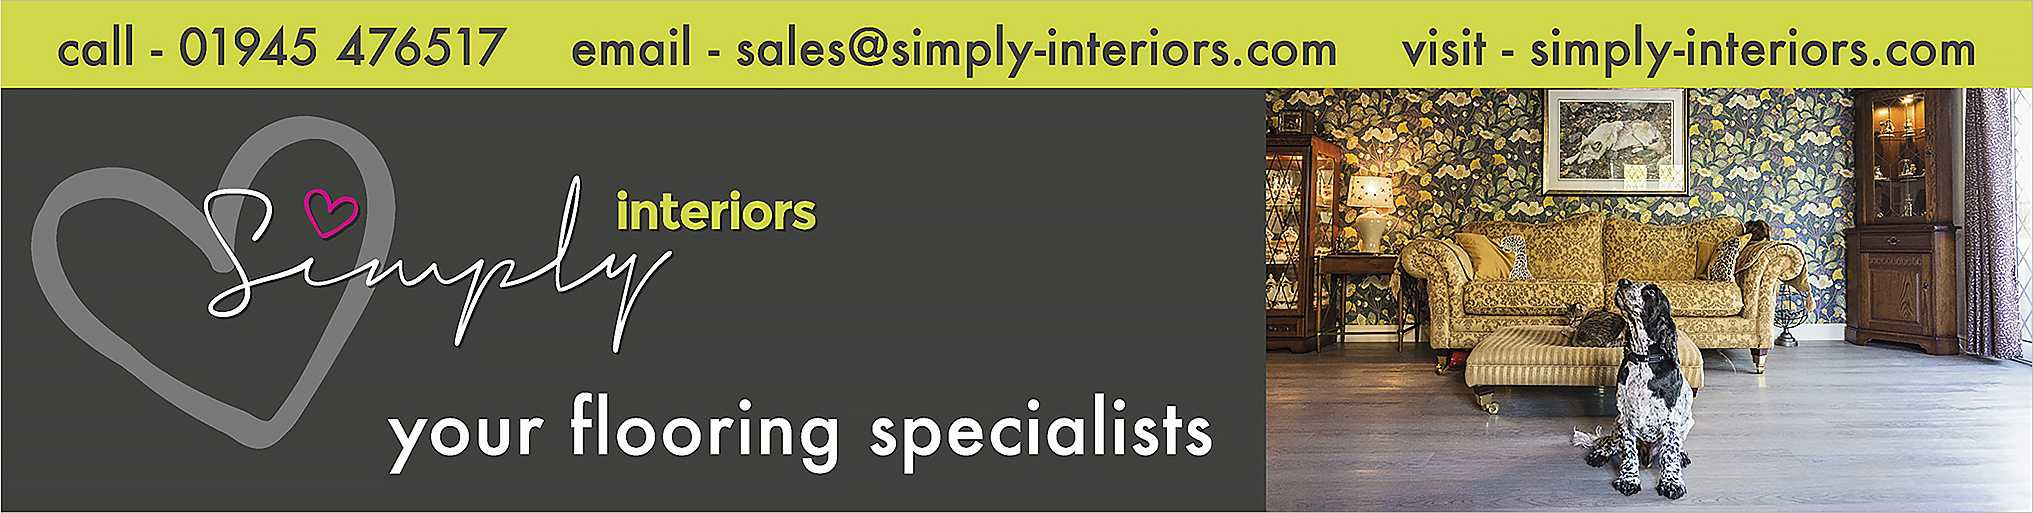 Simply Interiors carpets and flooring